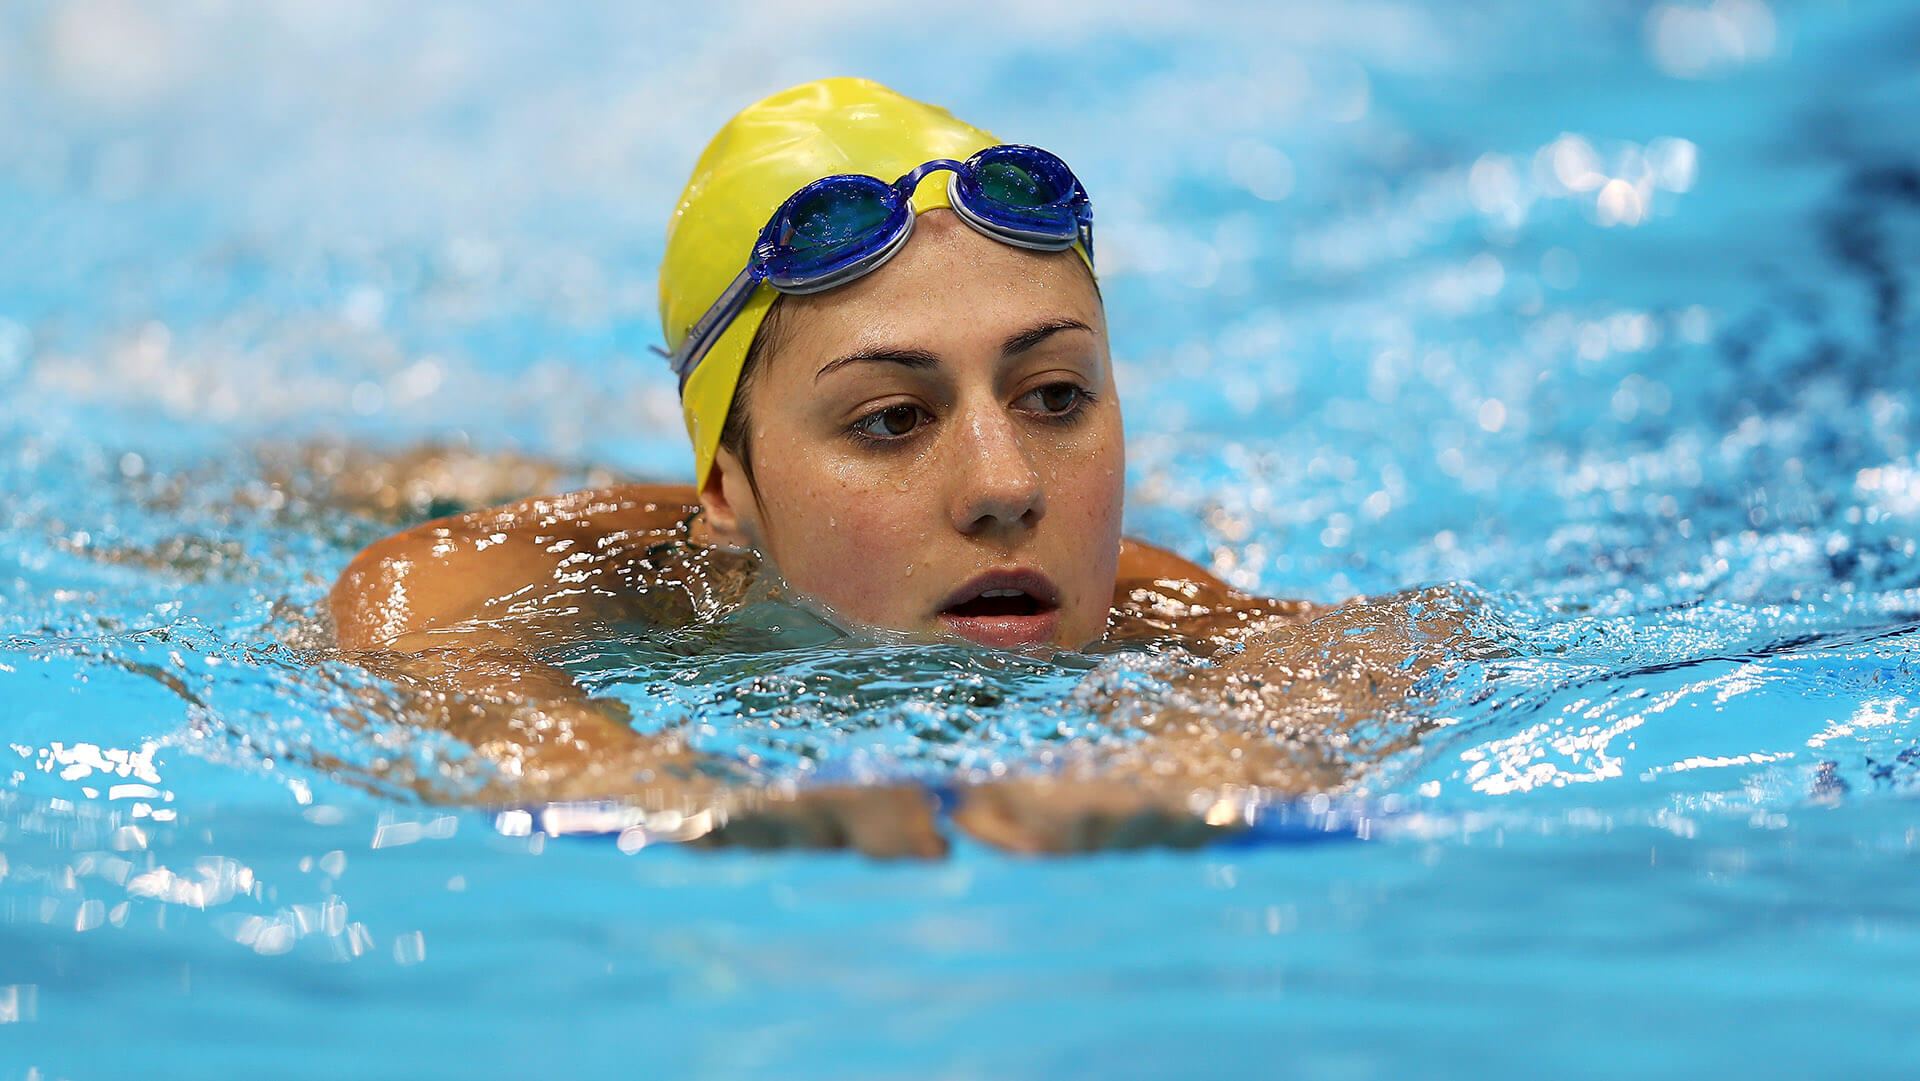 LONDON, ENGLAND - JULY 24:  Stephanie Rice of Australia swims during a training session ahead of the London Olympic Games at the Aquatics Centre in Olympic Park on July 24, 2012 in London, England.  (Photo by Clive Rose/Getty Images)